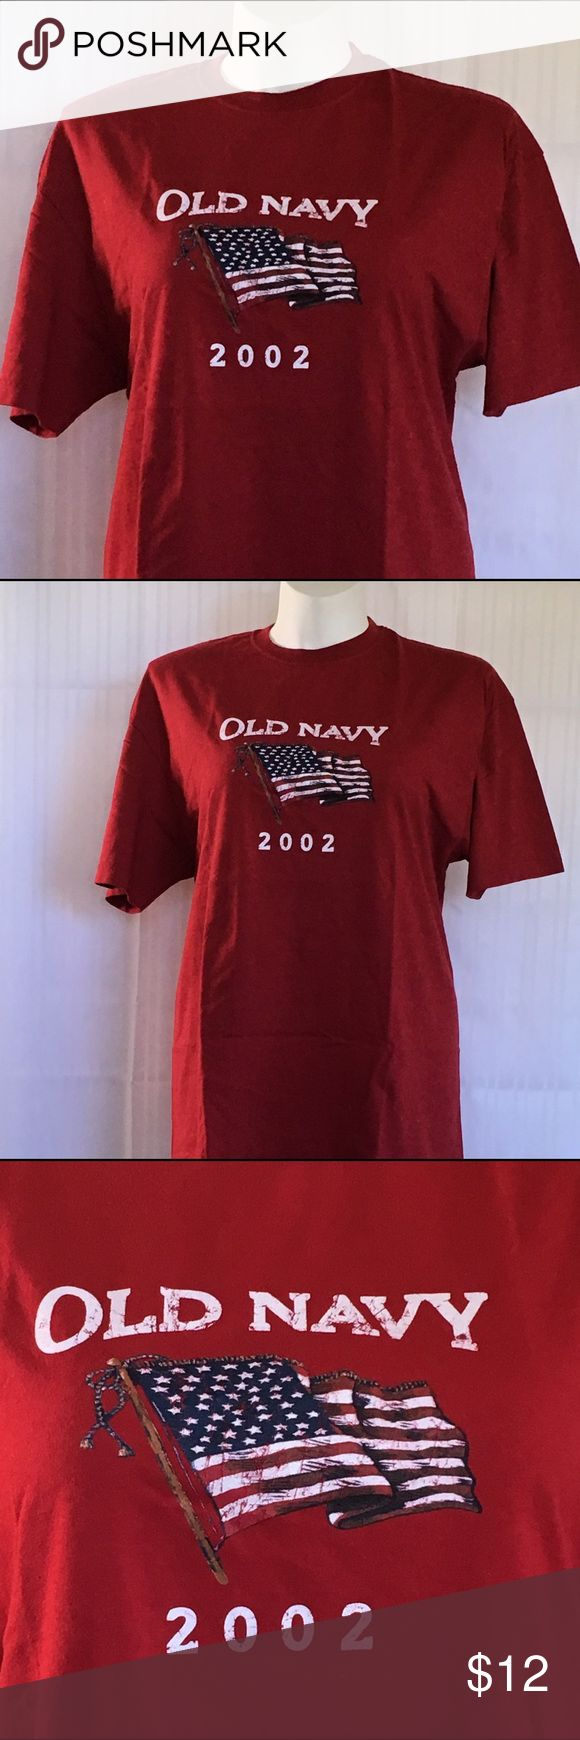 NWOT vintage red American flag Old Navy tee NWOT vintage red American flag 2002 Old Navy tee. Unisex (men's) size XL. 100% super soft cotton. Measurements available upon request. 🚫No holds 🚫No Lowball Offers 🚫No Trades ✅Please submit reasonable offers via the offer button or 🎁 bundle & save! Old Navy Shirts Tees - Short Sleeve